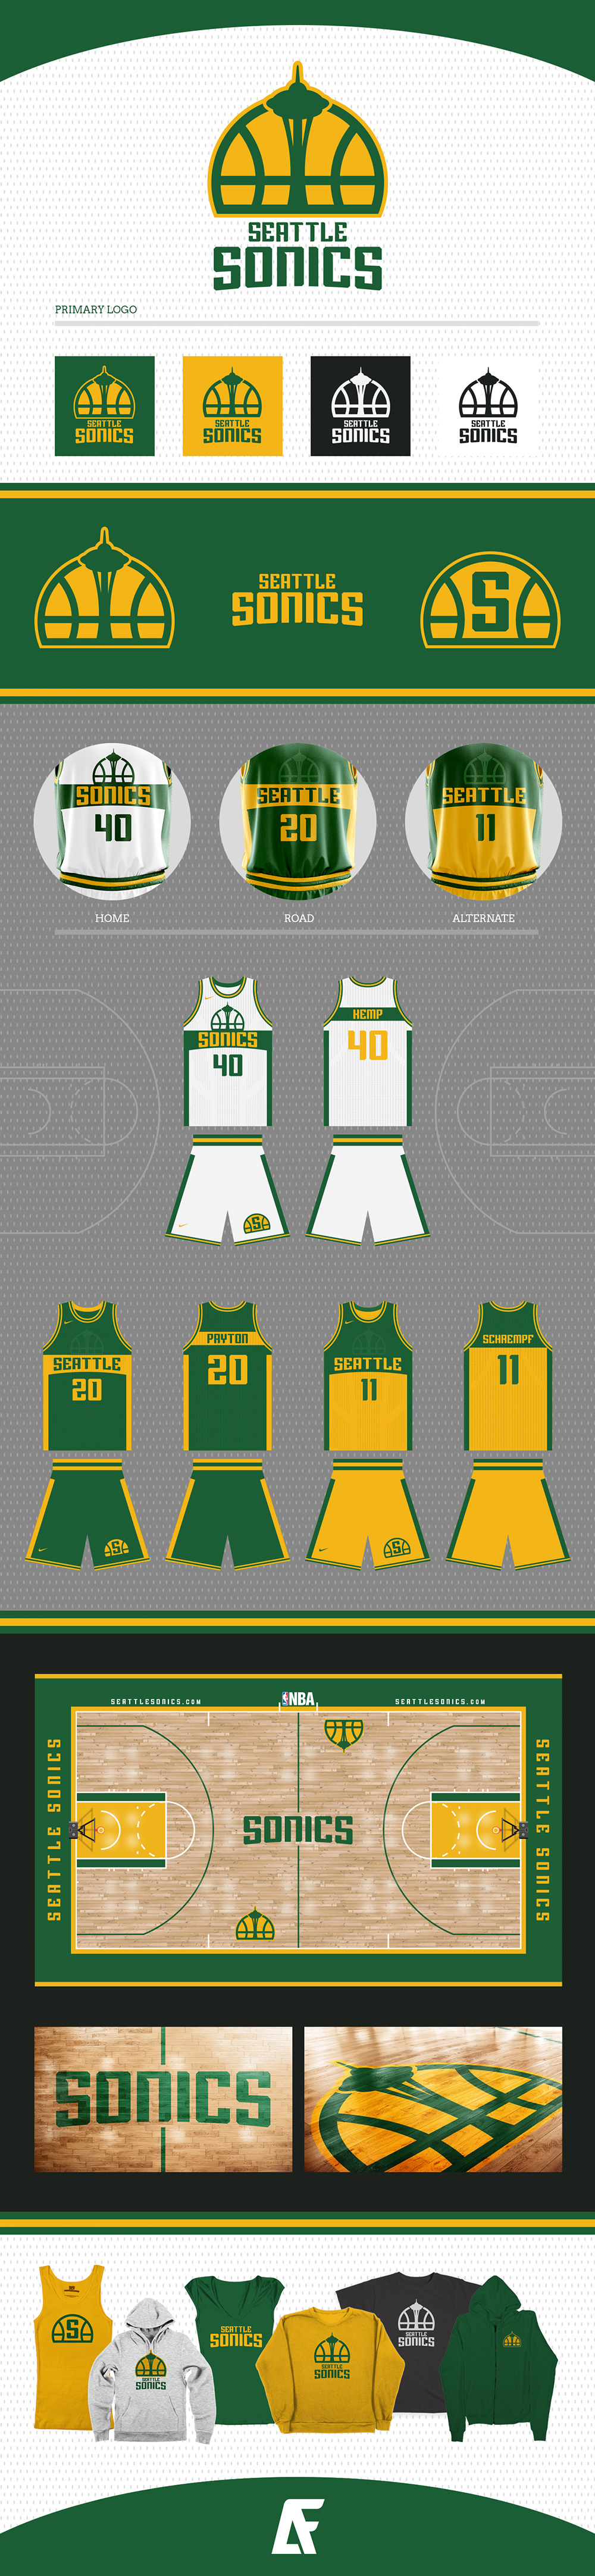 Basketball Team Logo: Seattle Sonics Identity concept by Addison Foote